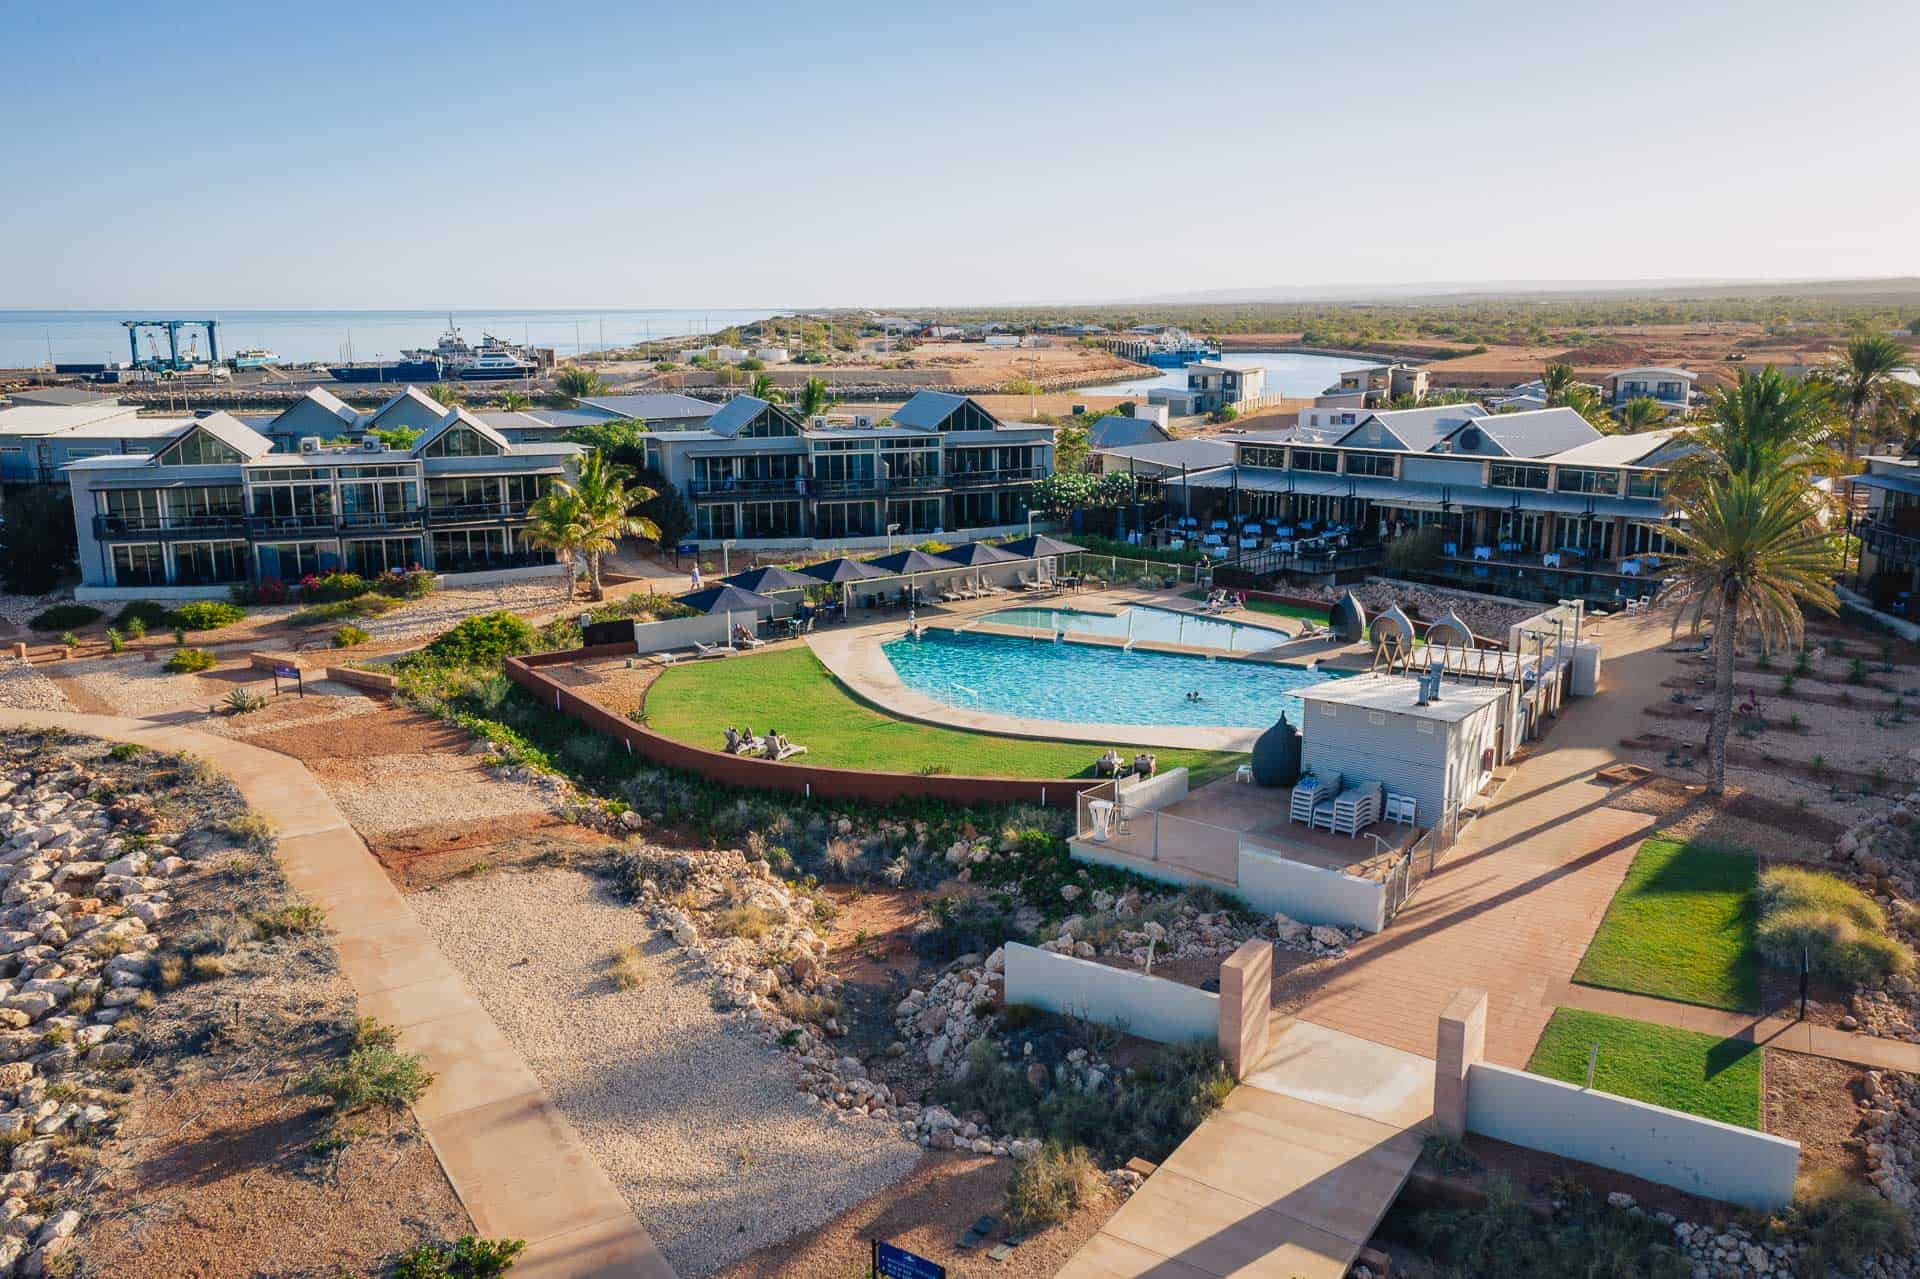 mantarays ningaloo beach resort, things to do in exmouth, exmouth western australia, what to do in exmouth, exmouth things to do